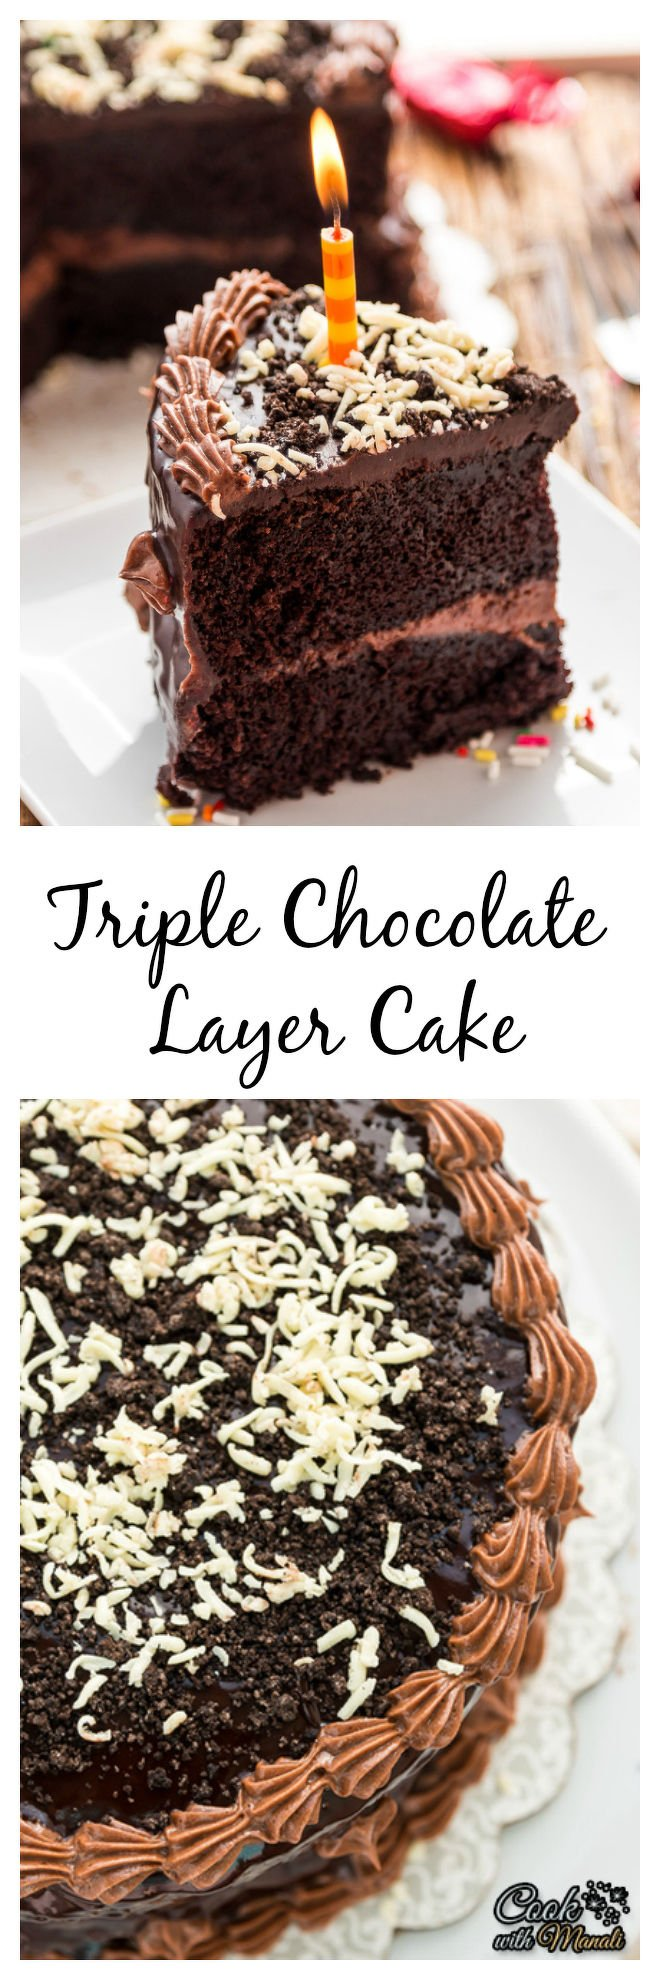 Triple Chocolate Layer Cake - Cook With Manali